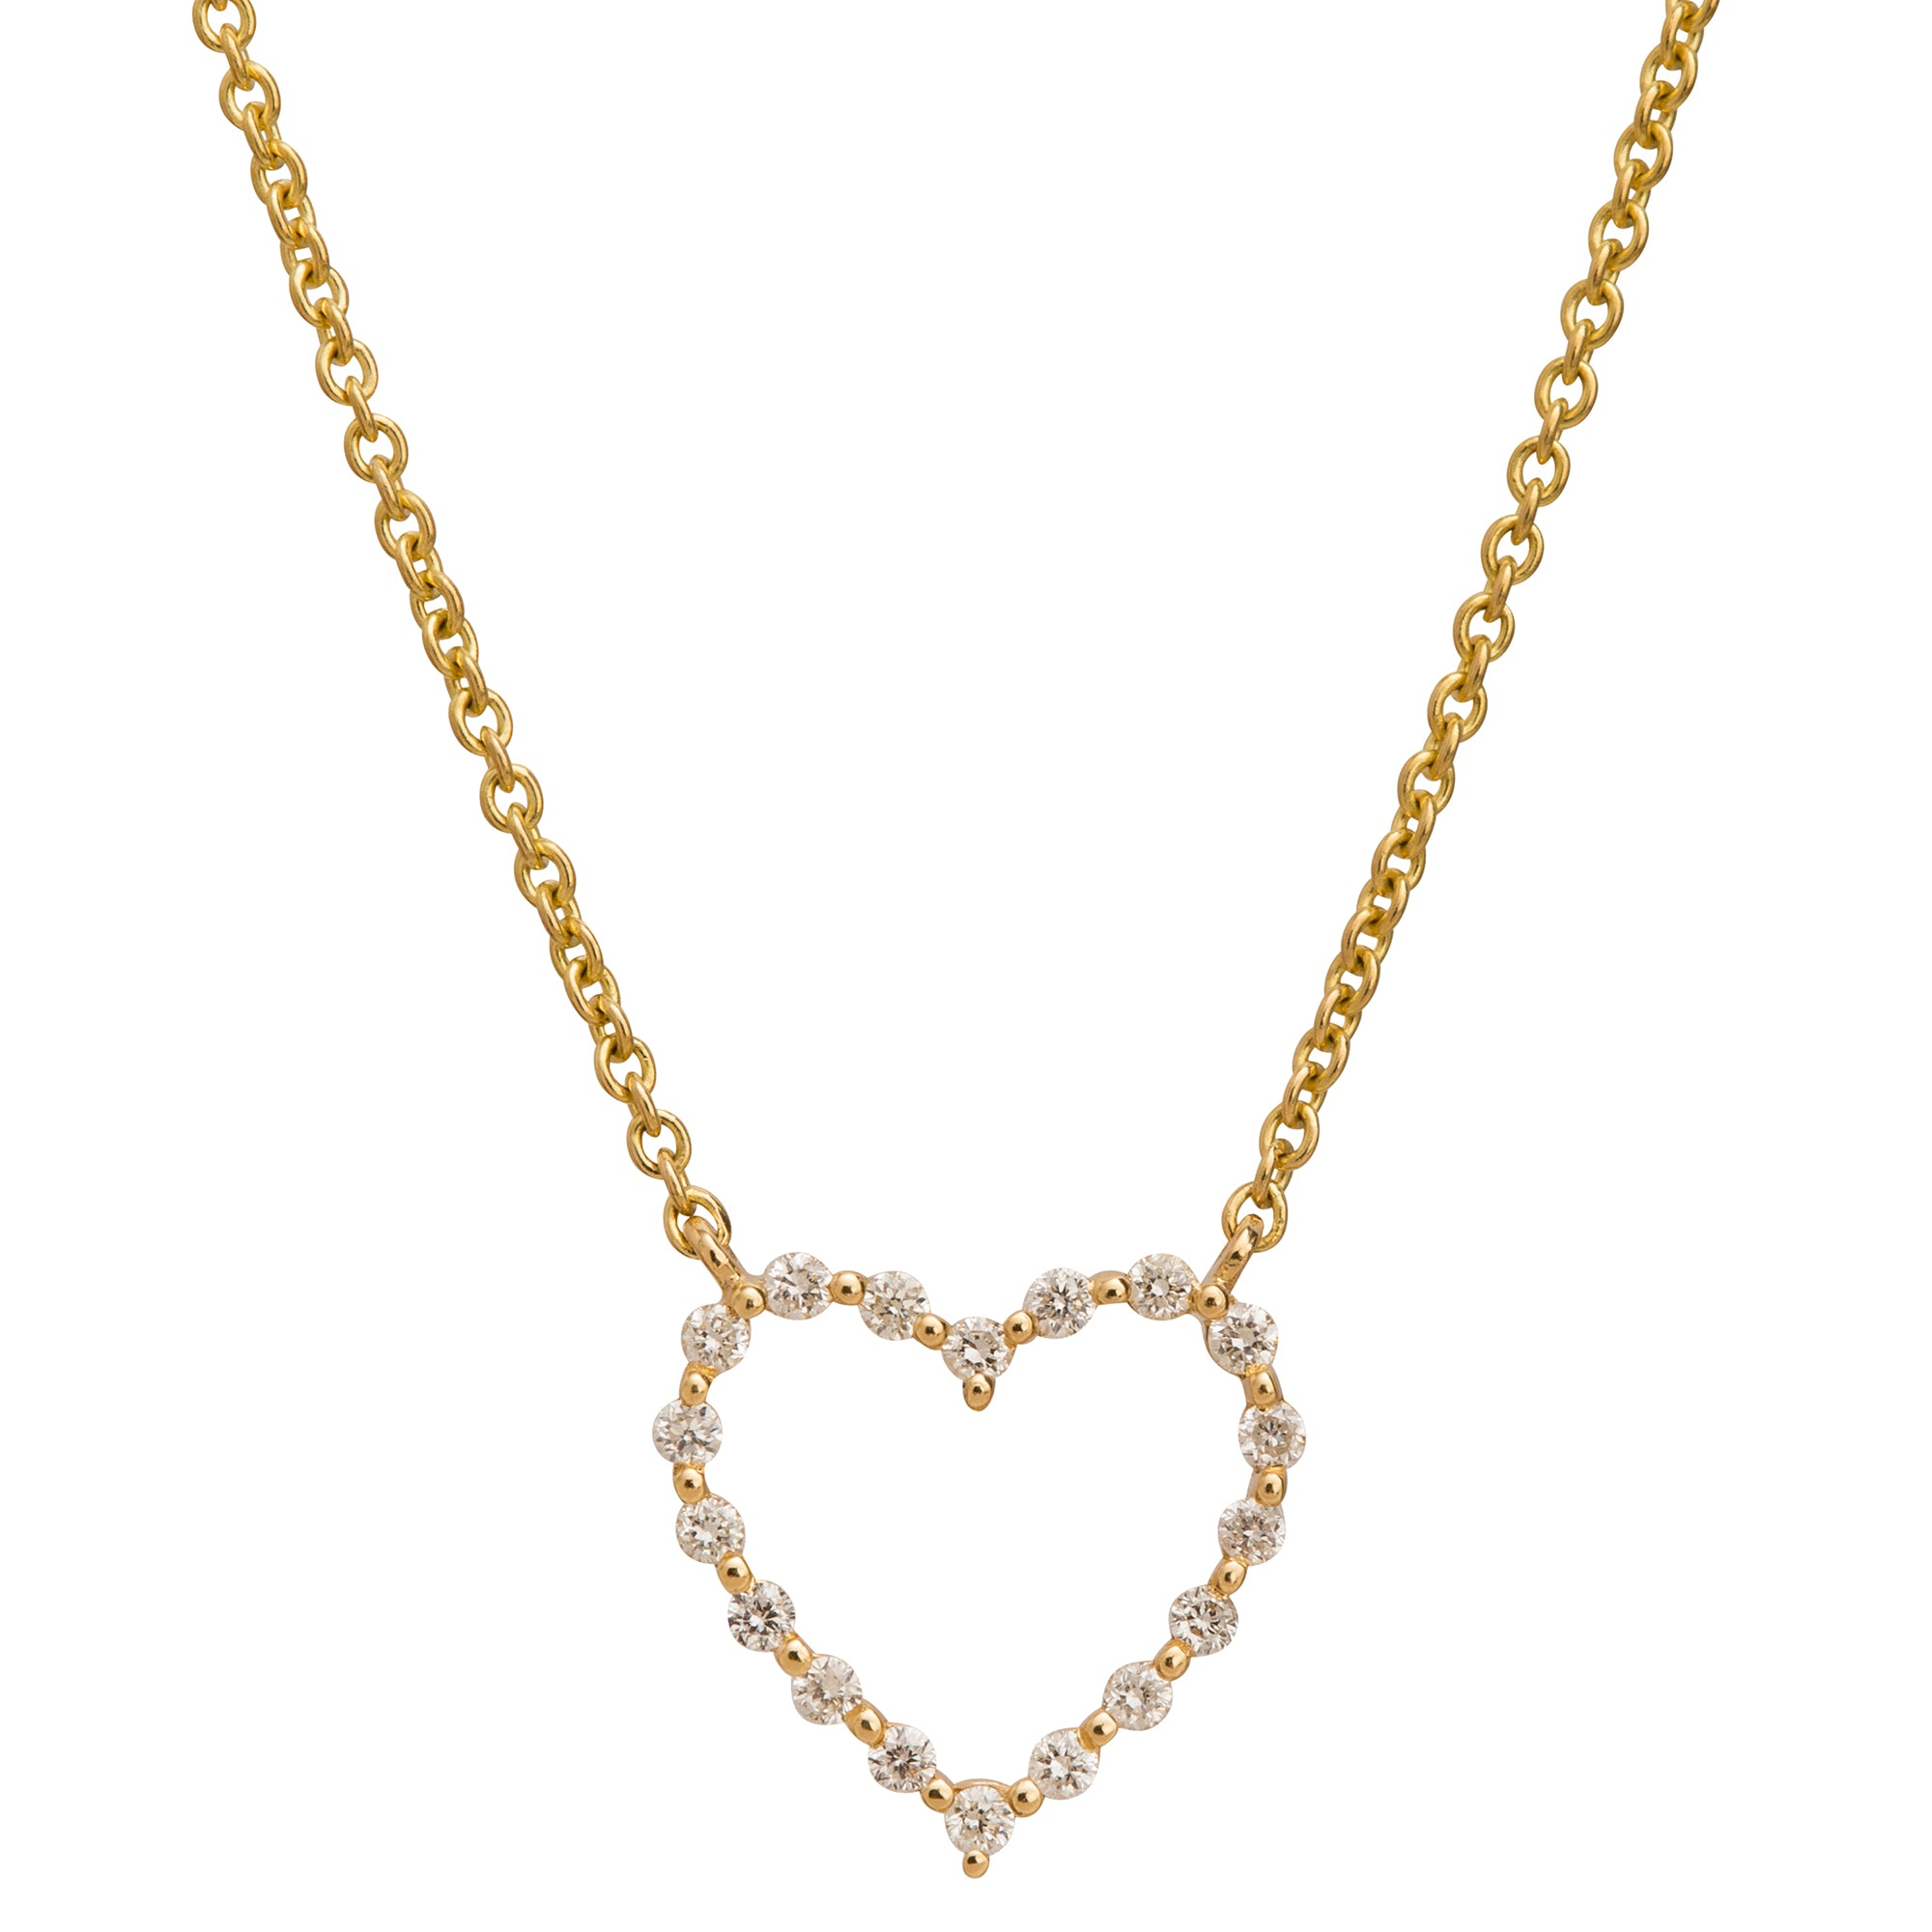 Separated Diamond Heart Charm Necklace by Rosa de la Cruz for Broken English Jewelry